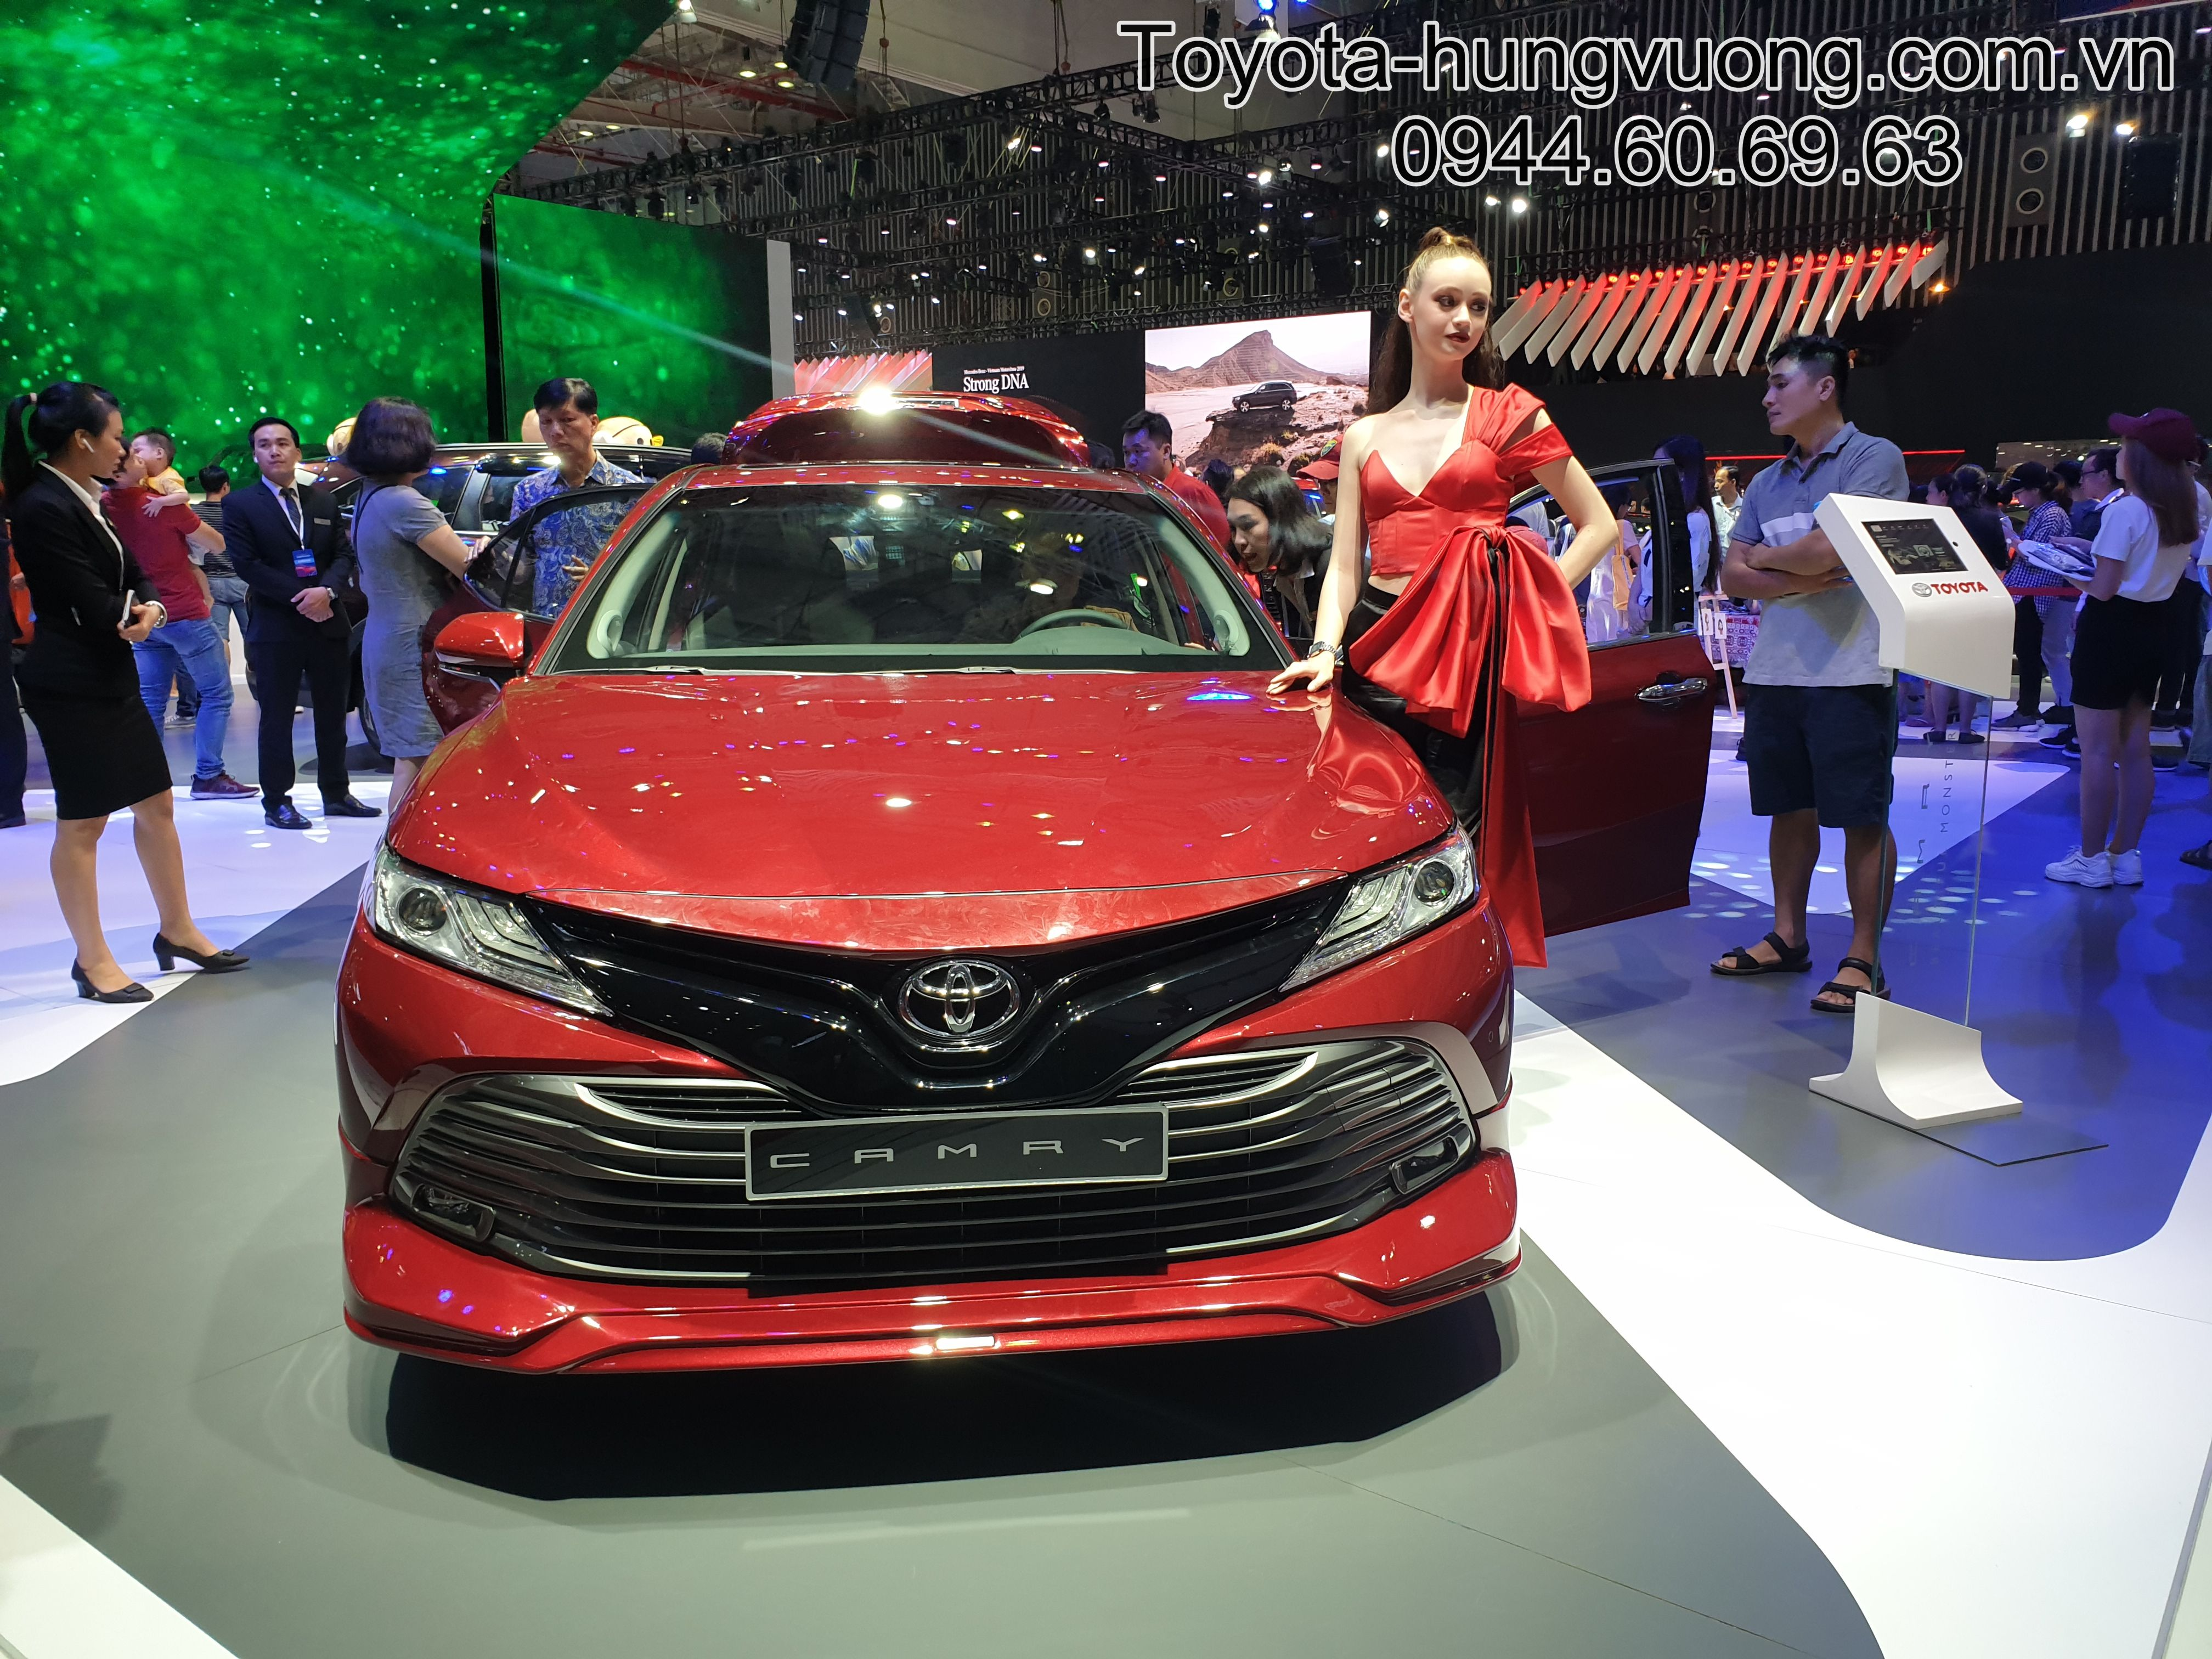 toyota-trien-lam-o-to-2019